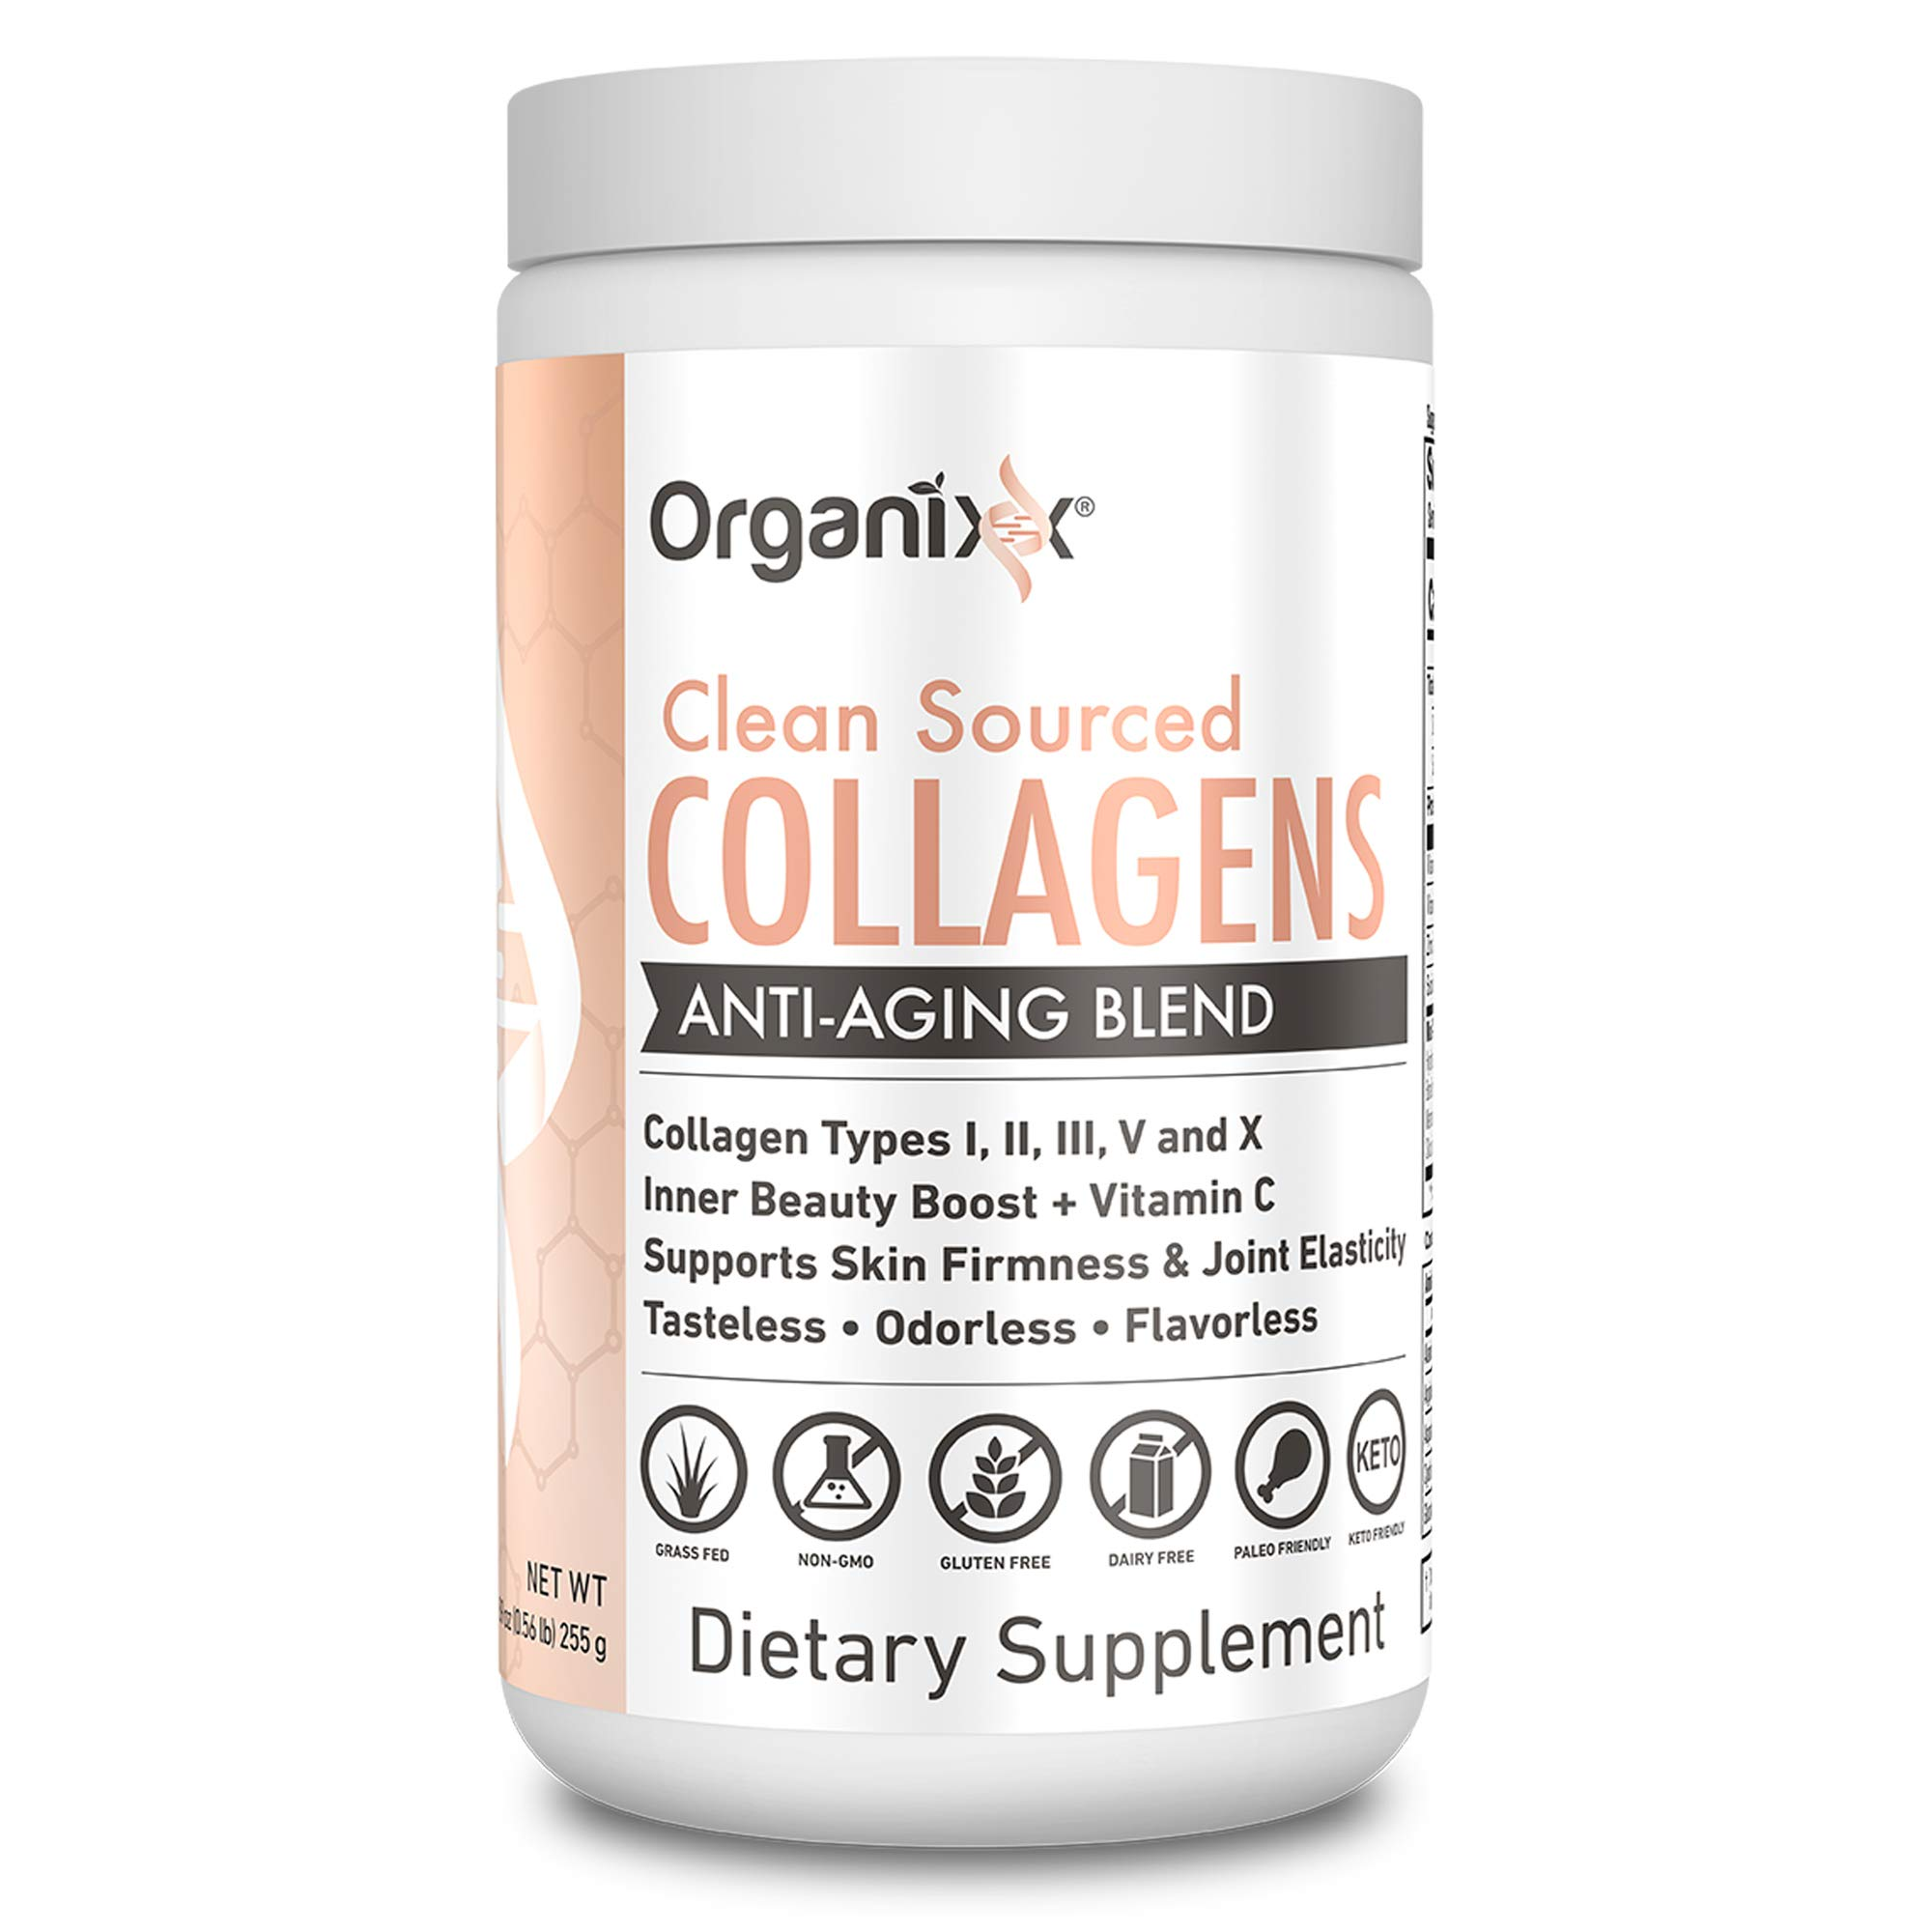 Collagen Powder - 5 types in 1 - Improves Hair, Skin and Nails - 4 Sources Including Marine Collagen and Bone Broth Collagen - Clean Sourced Collagens by Organixx (30 Servings)